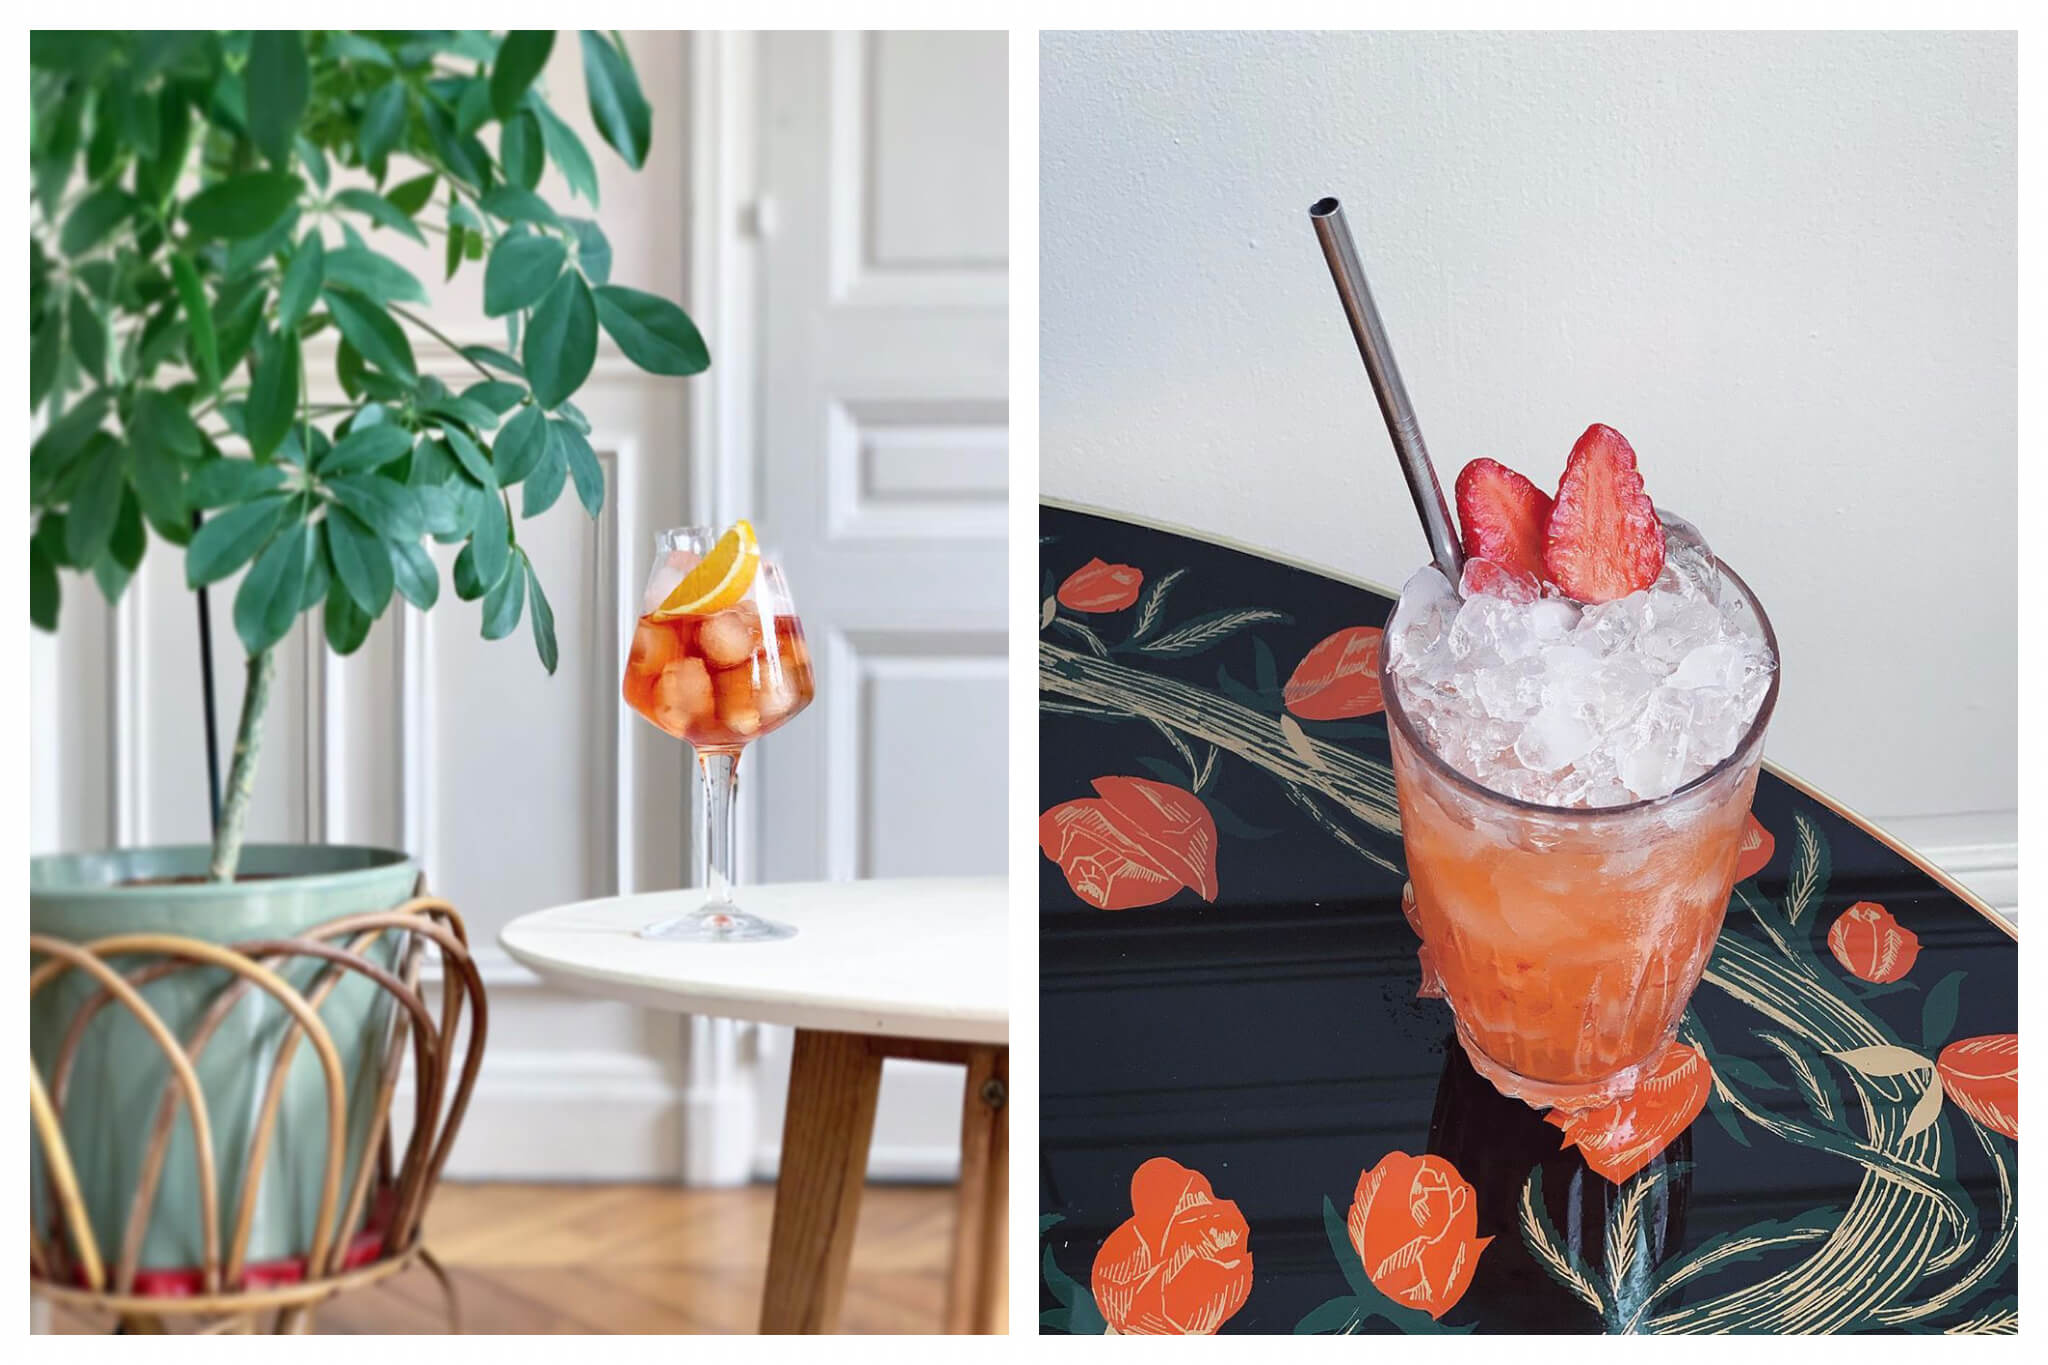 Left: a cocktail with a slice of orange on top sitting on a white table next to a pot plant in a Parisian apartment.  Right: a cocktail with two strawberries on top sitting on a table with a floral design.